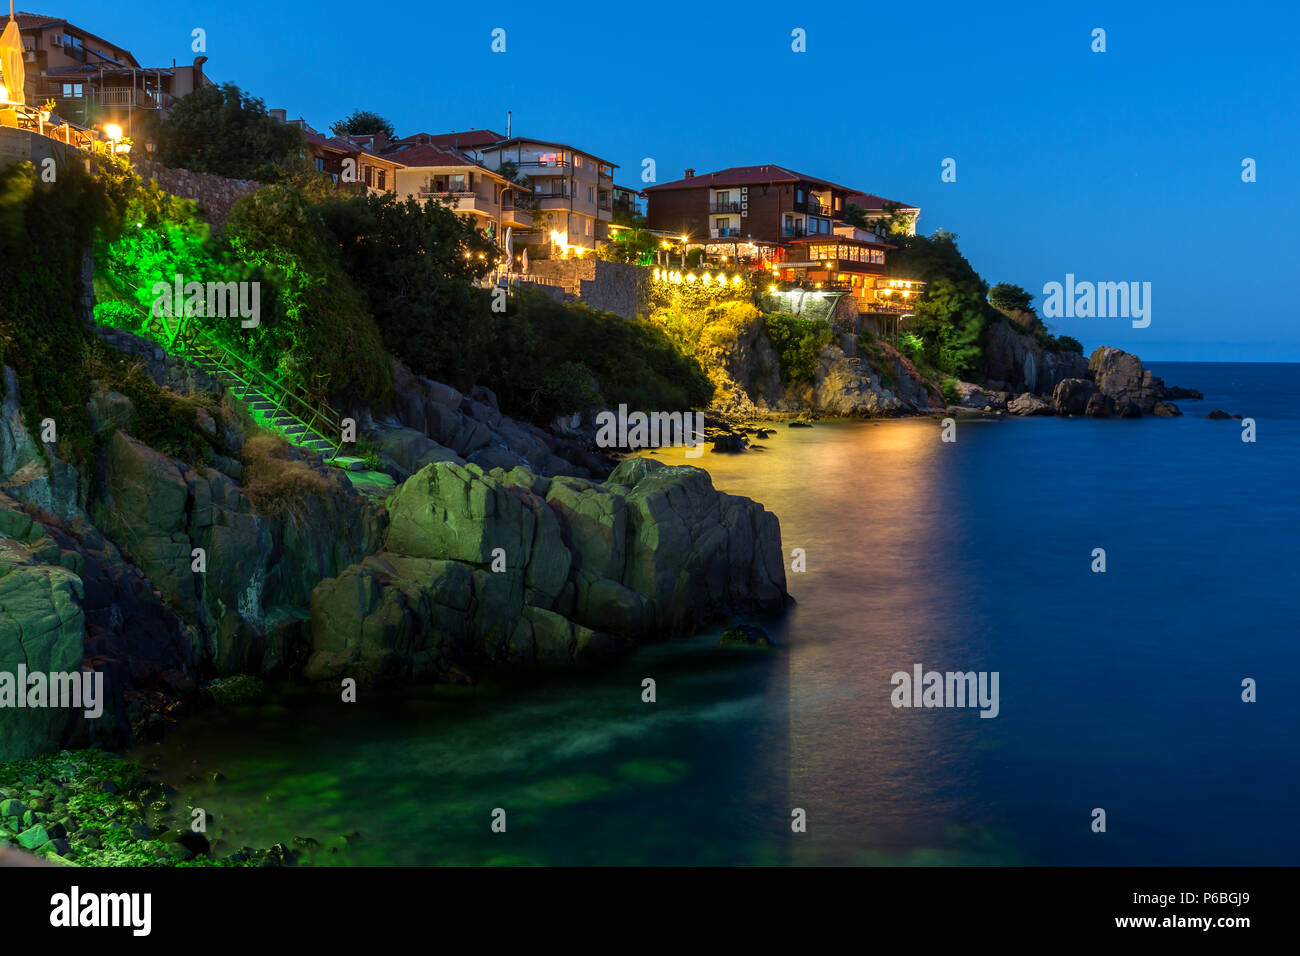 Night photo of old town of Sozopol of Sozopol ancient fortifications, Bulgaria - Stock Image